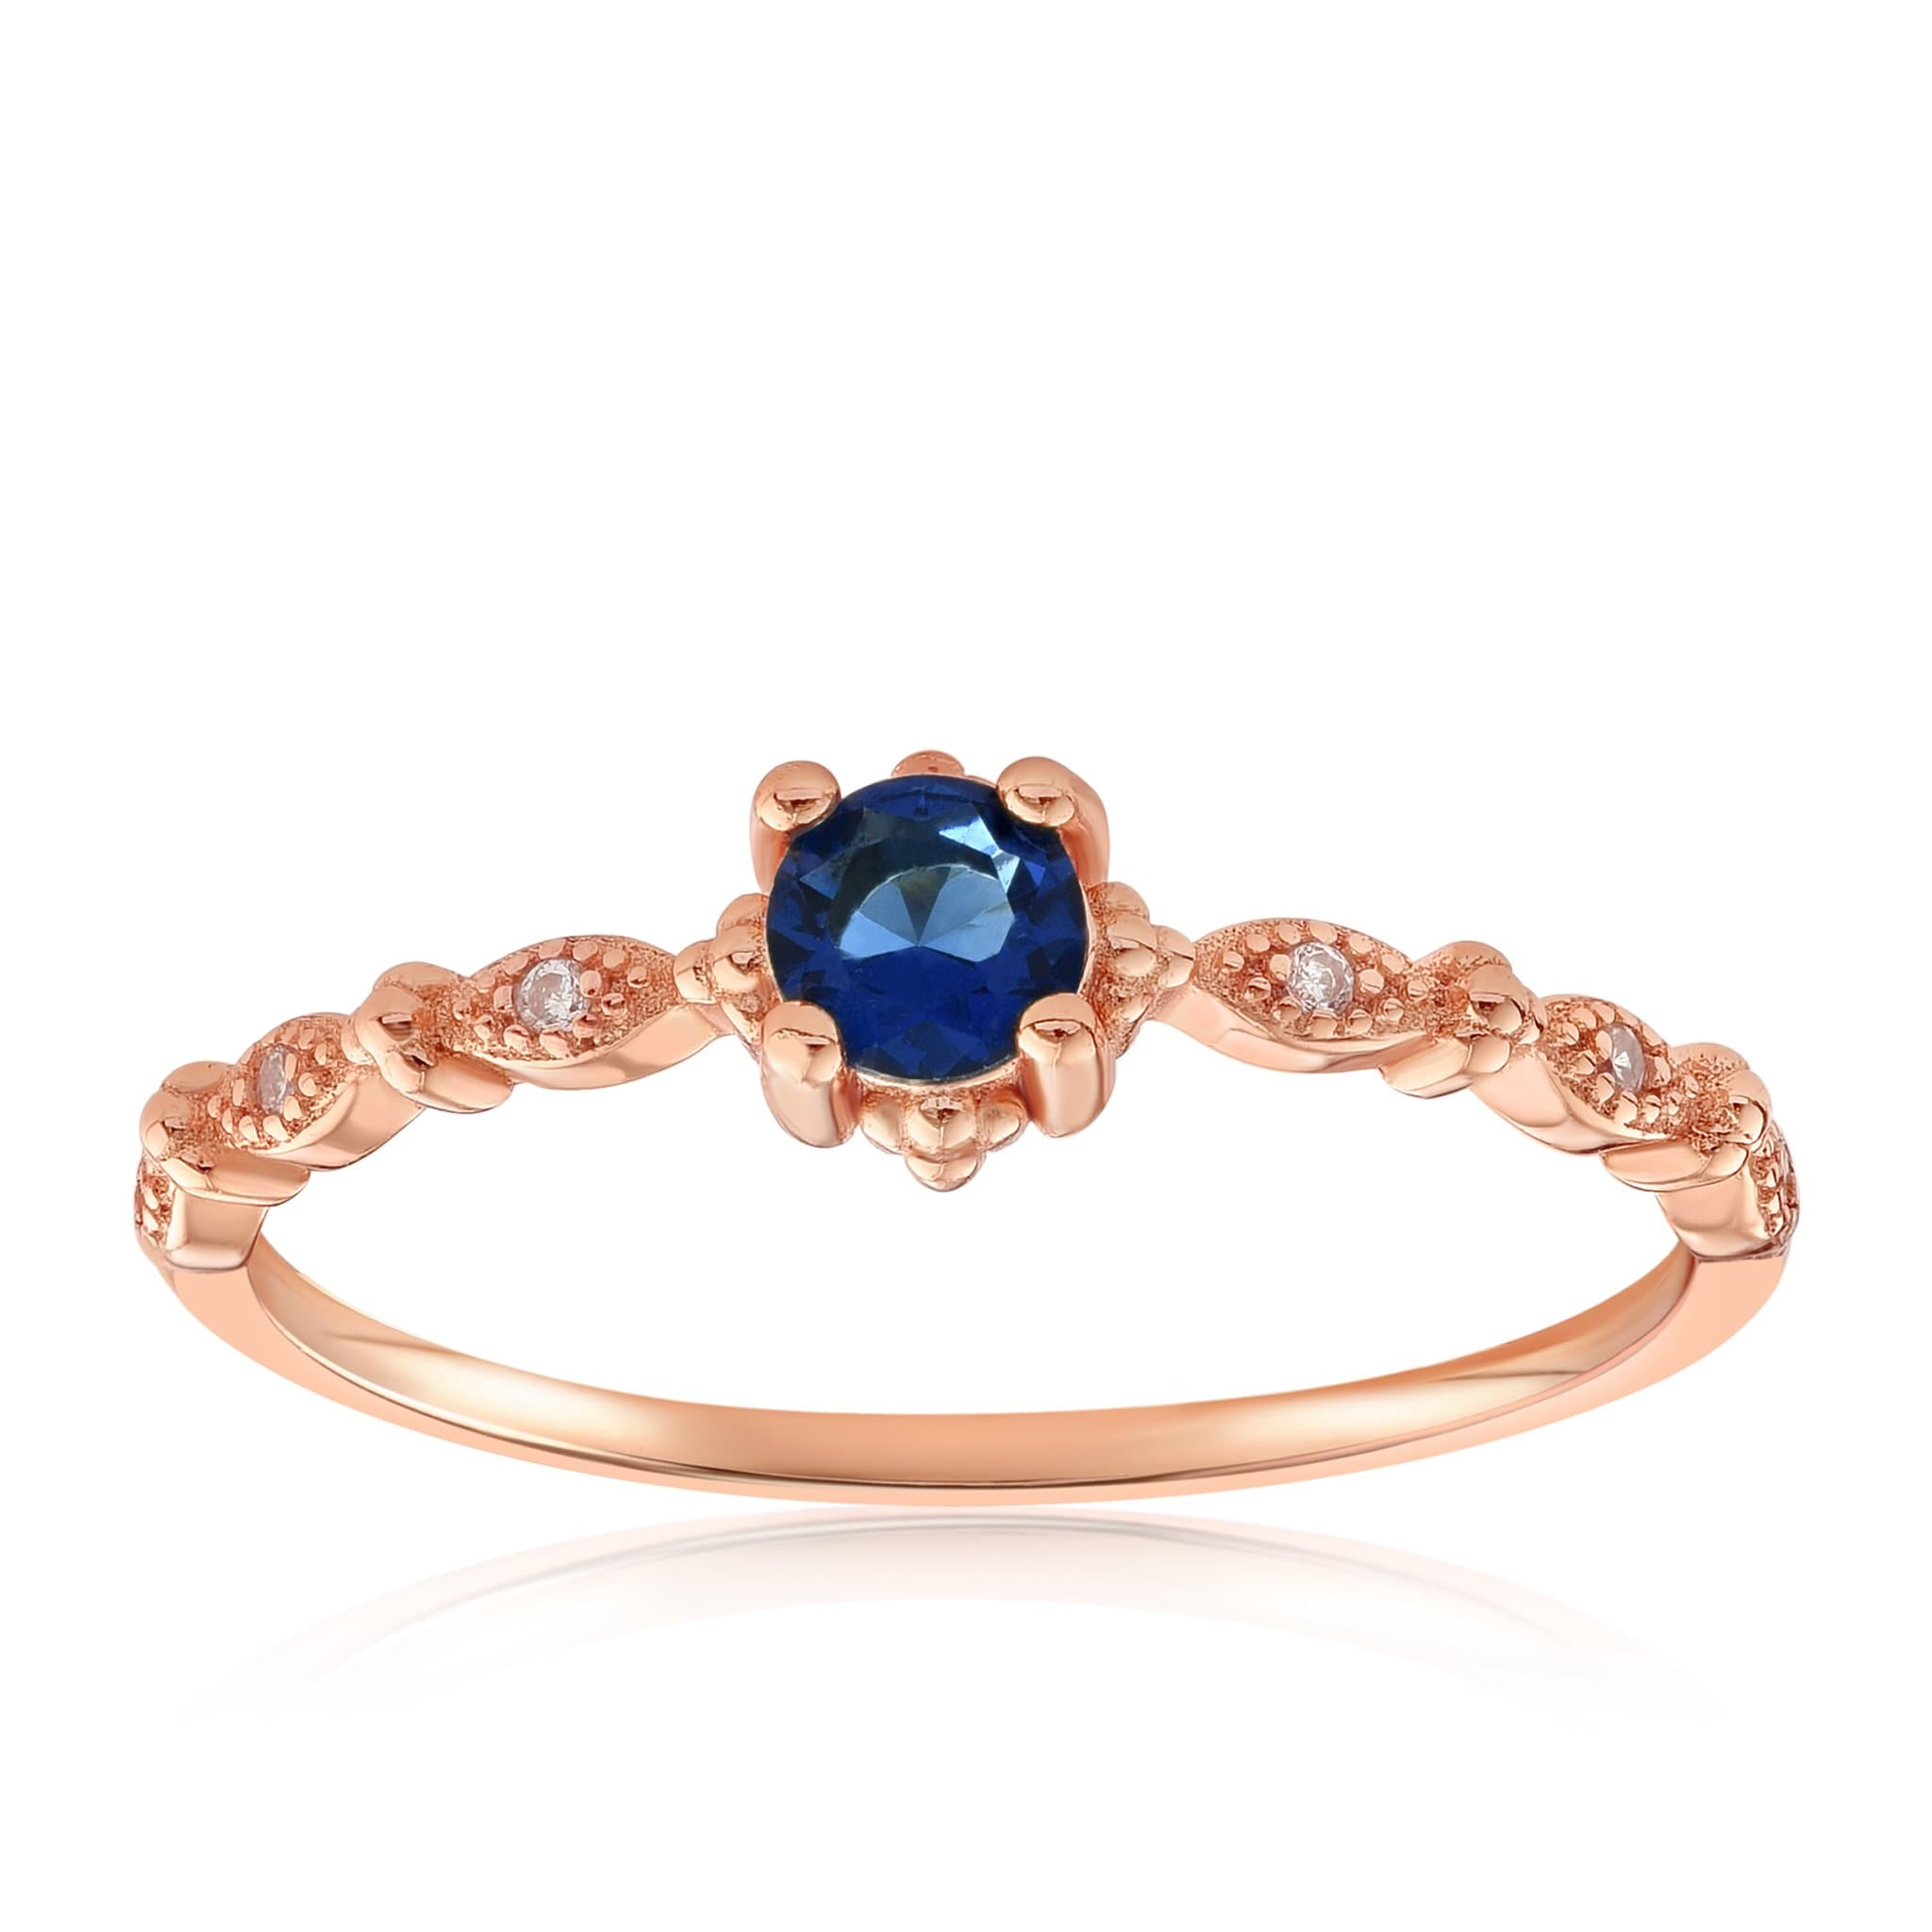 Garen Ring Blue Gemstone - Front View Facing Up - 18K Rose Gold Vermeil